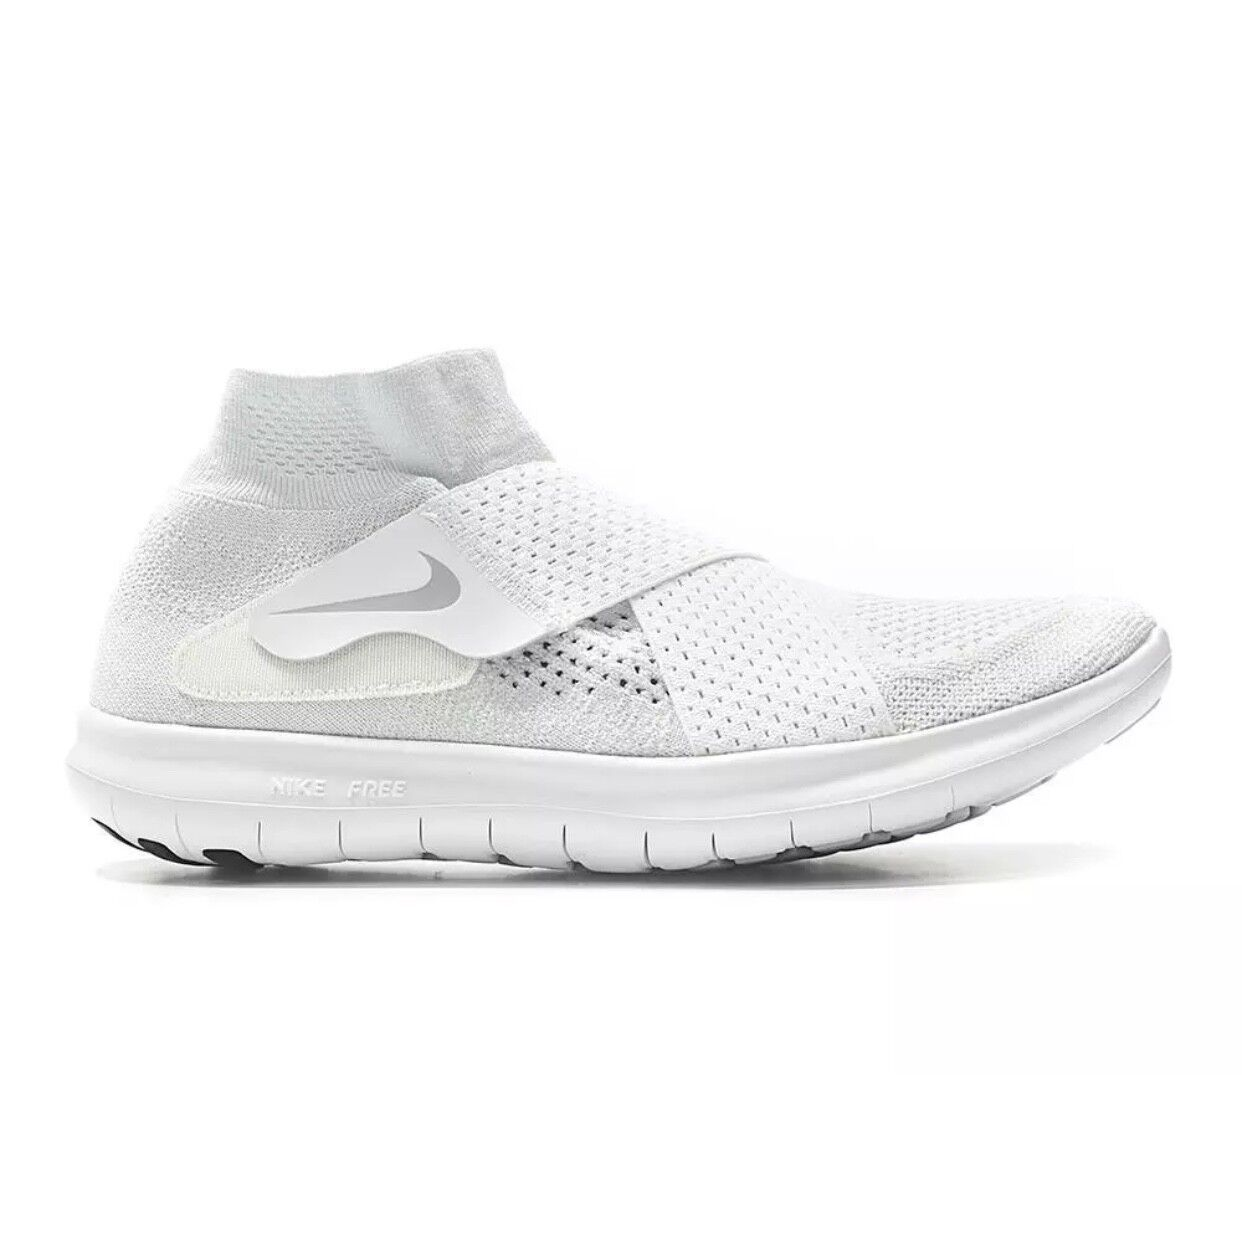 Nike Free RN Motion FK 2017 White Wolf Grey shoes (880845 100) Multi Size